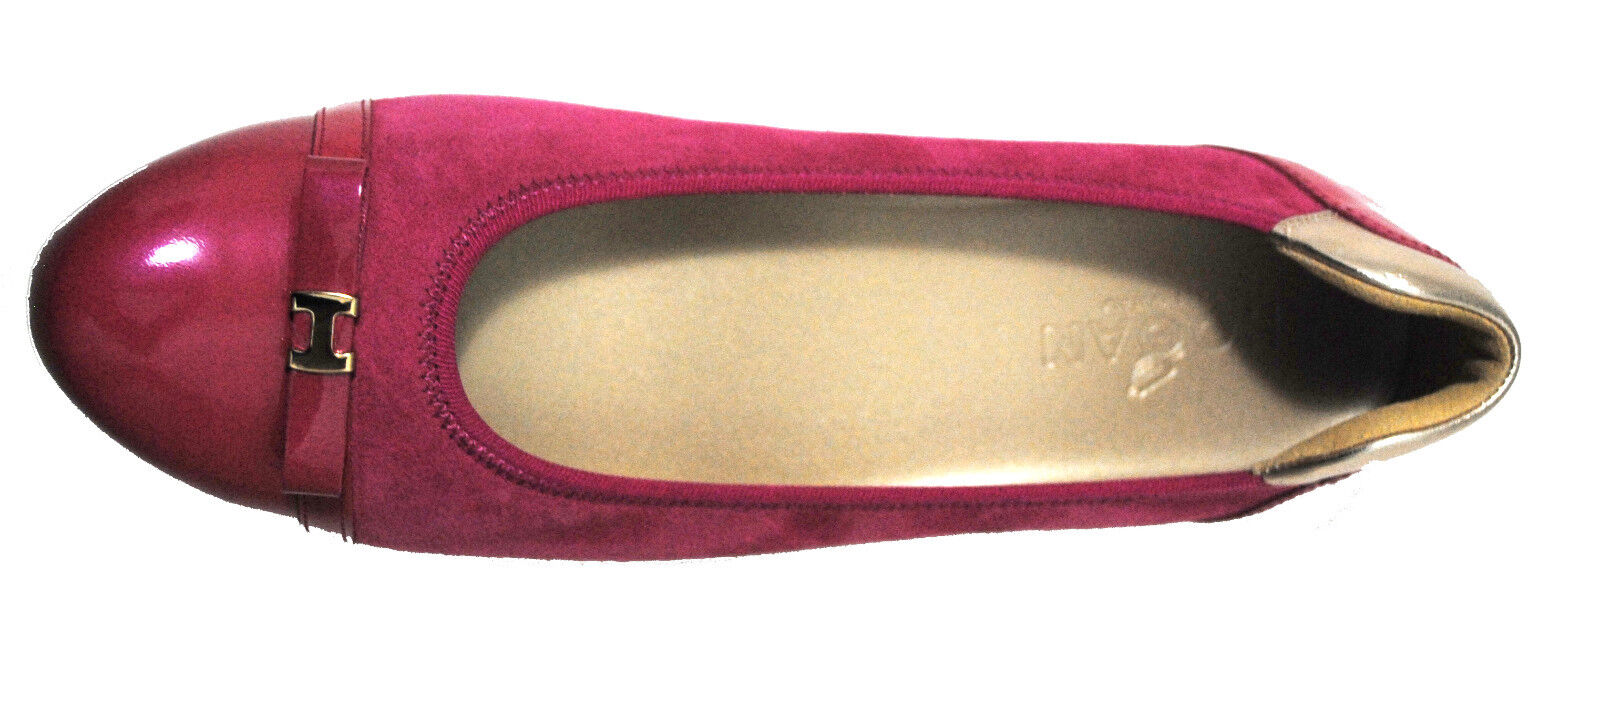 HOGAN Ballerinas WRAP BALLERINA H PICCOLA NEU Gr.38 NEU PICCOLA OVP Schuhe Made in  f825cd